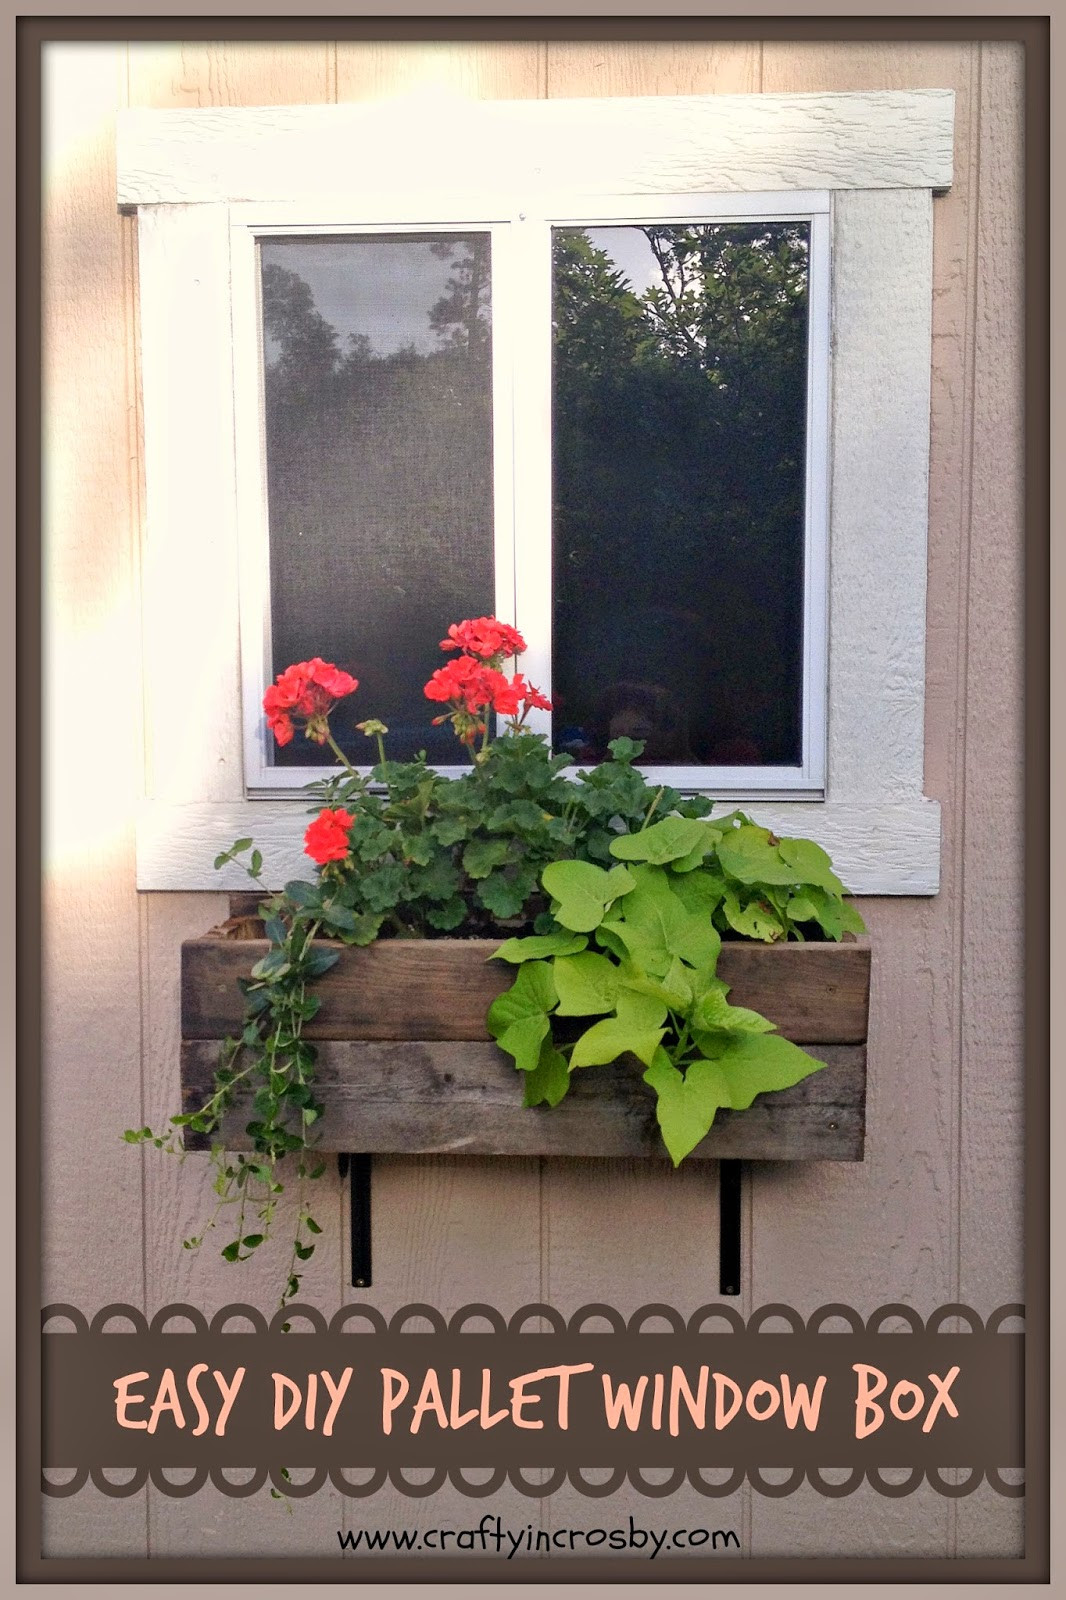 Best ideas about Window Boxes DIY . Save or Pin Crafty in Crosby Easy DIY Pallet Window Box Now.